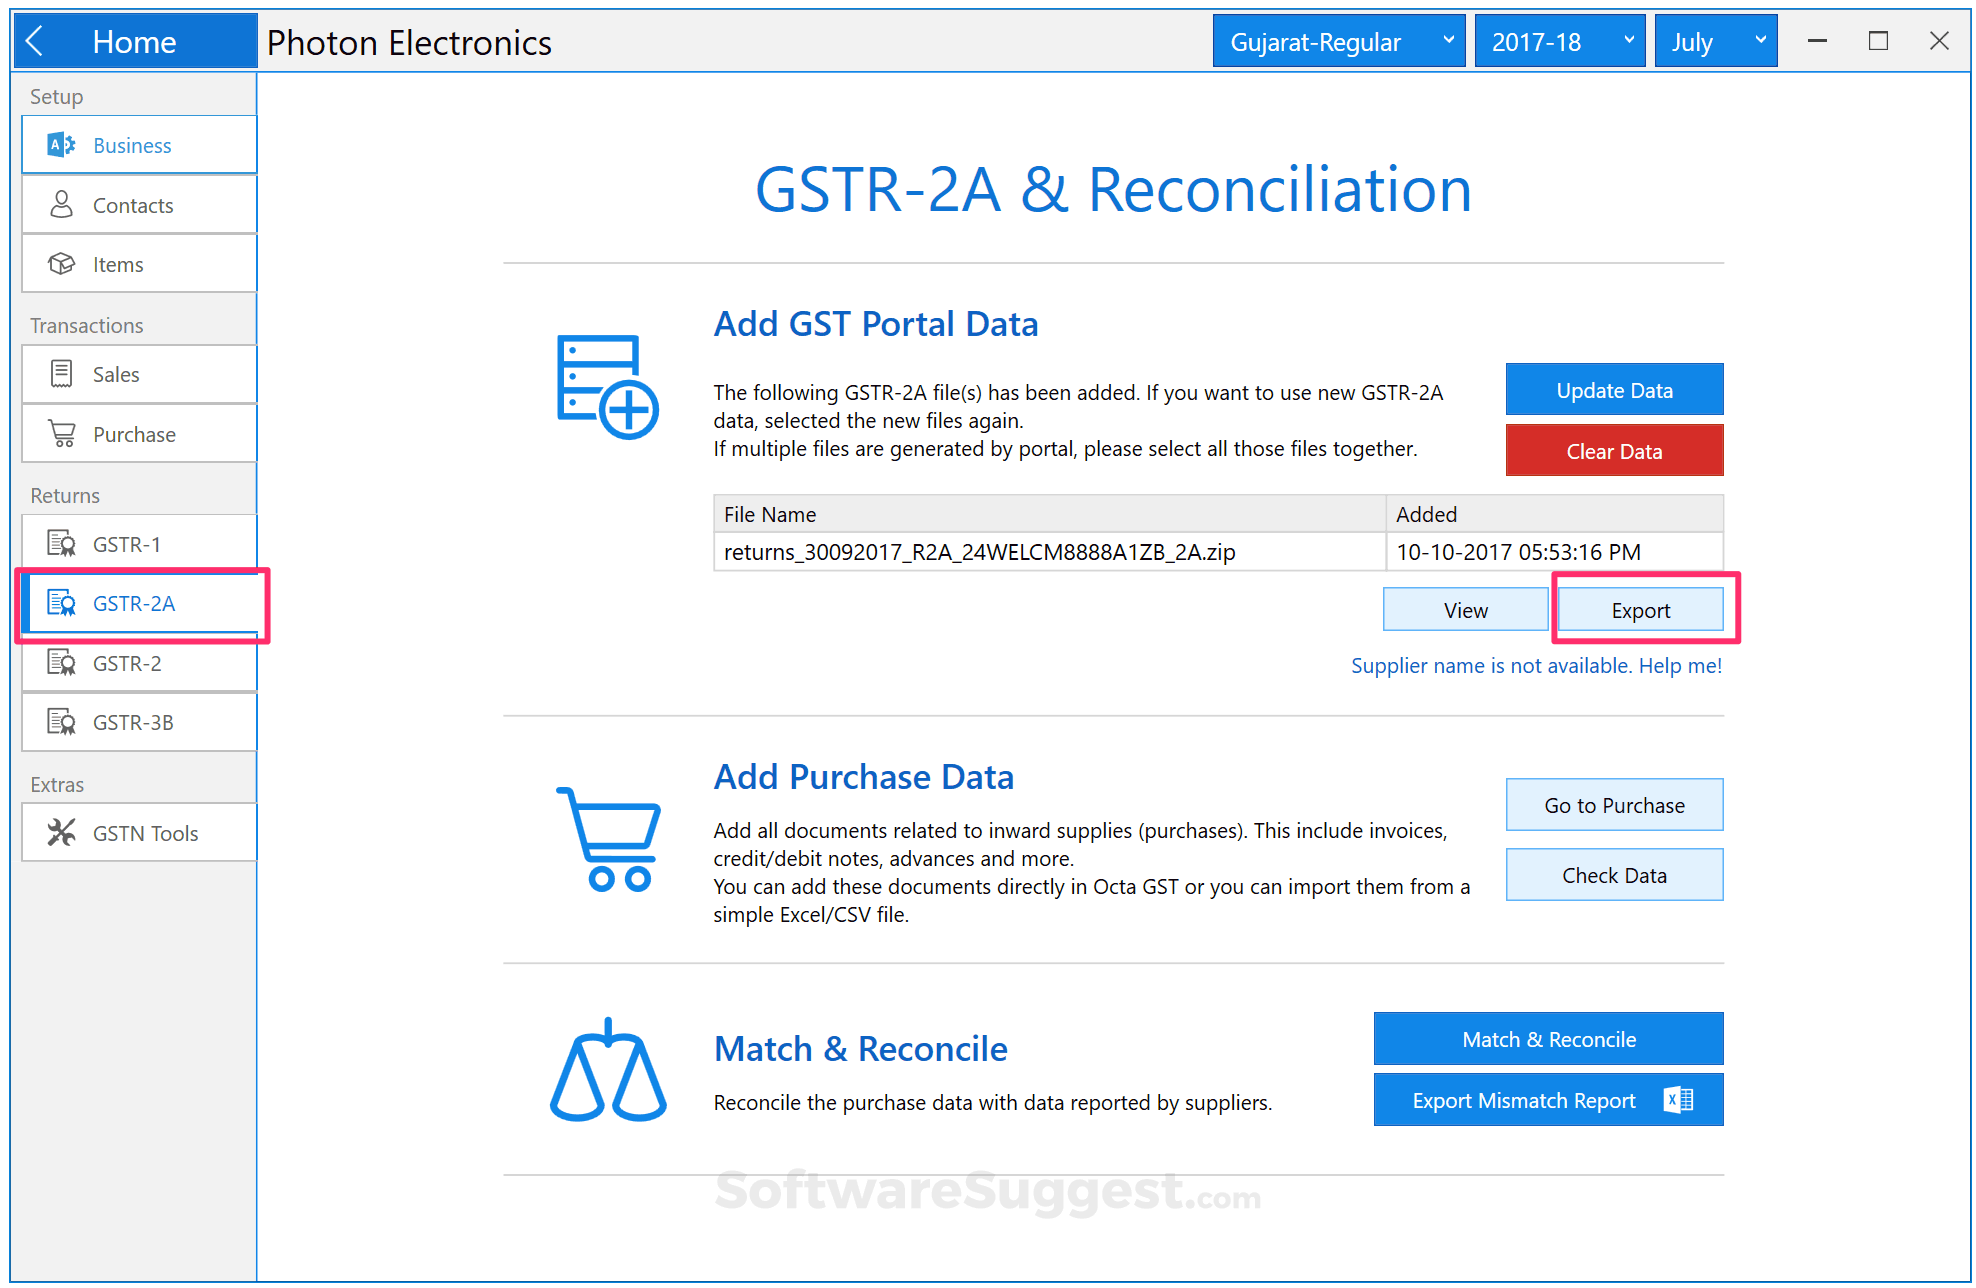 Octa GST Pricing, Features & Reviews 2019 - Free Demo